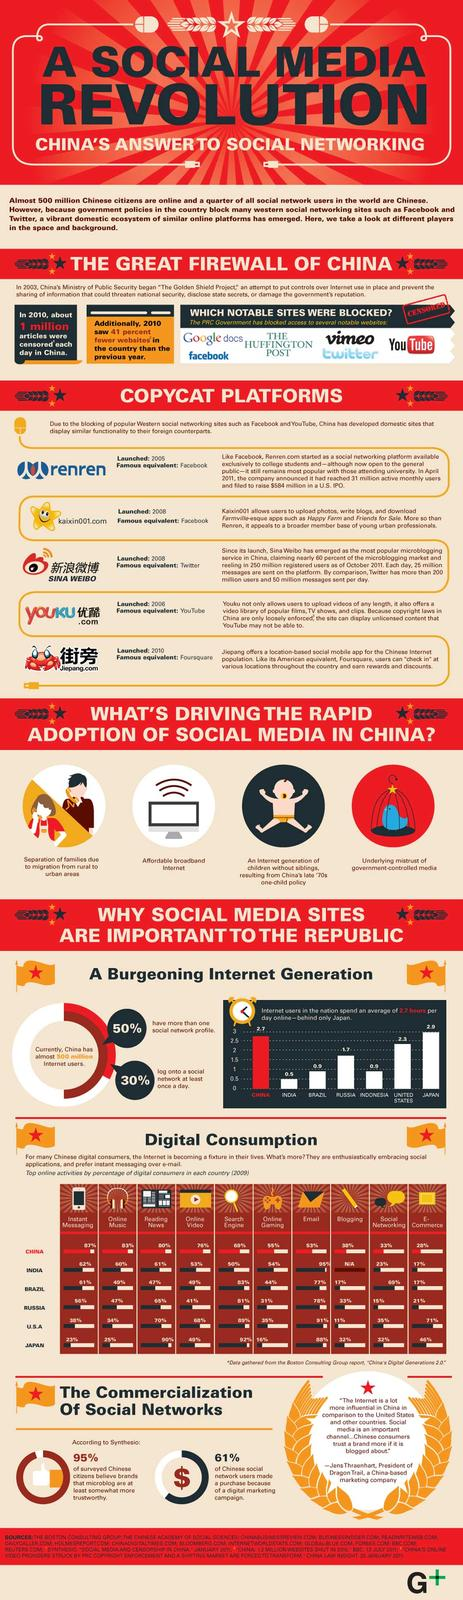 SocialMediaRevolutionChina.jpg